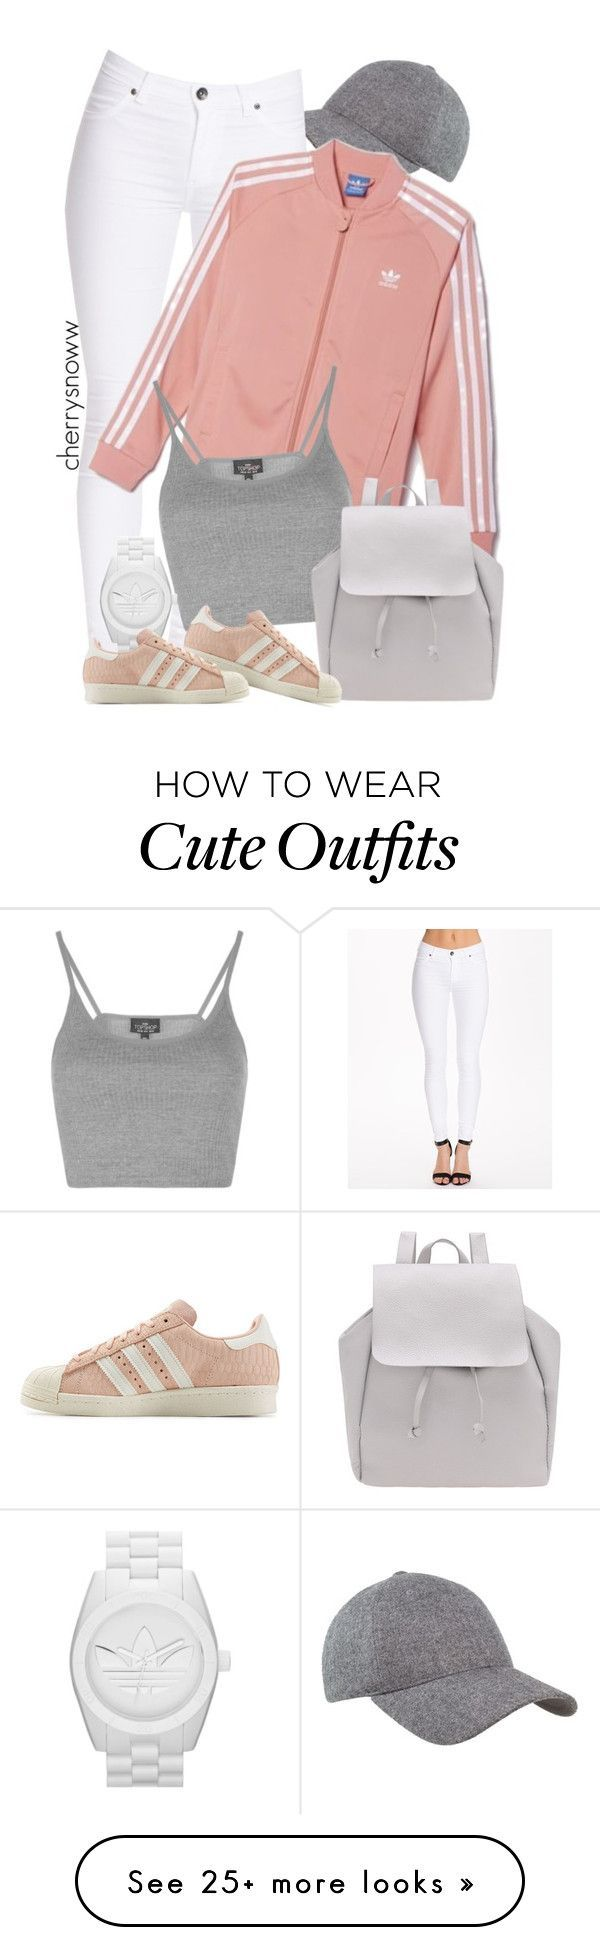 """""""Cute sporty pastels spring outfit"""" by cherrysnoww on Polyvore featuring Dr. Denim, adidas, Topshop and adidas Originals"""